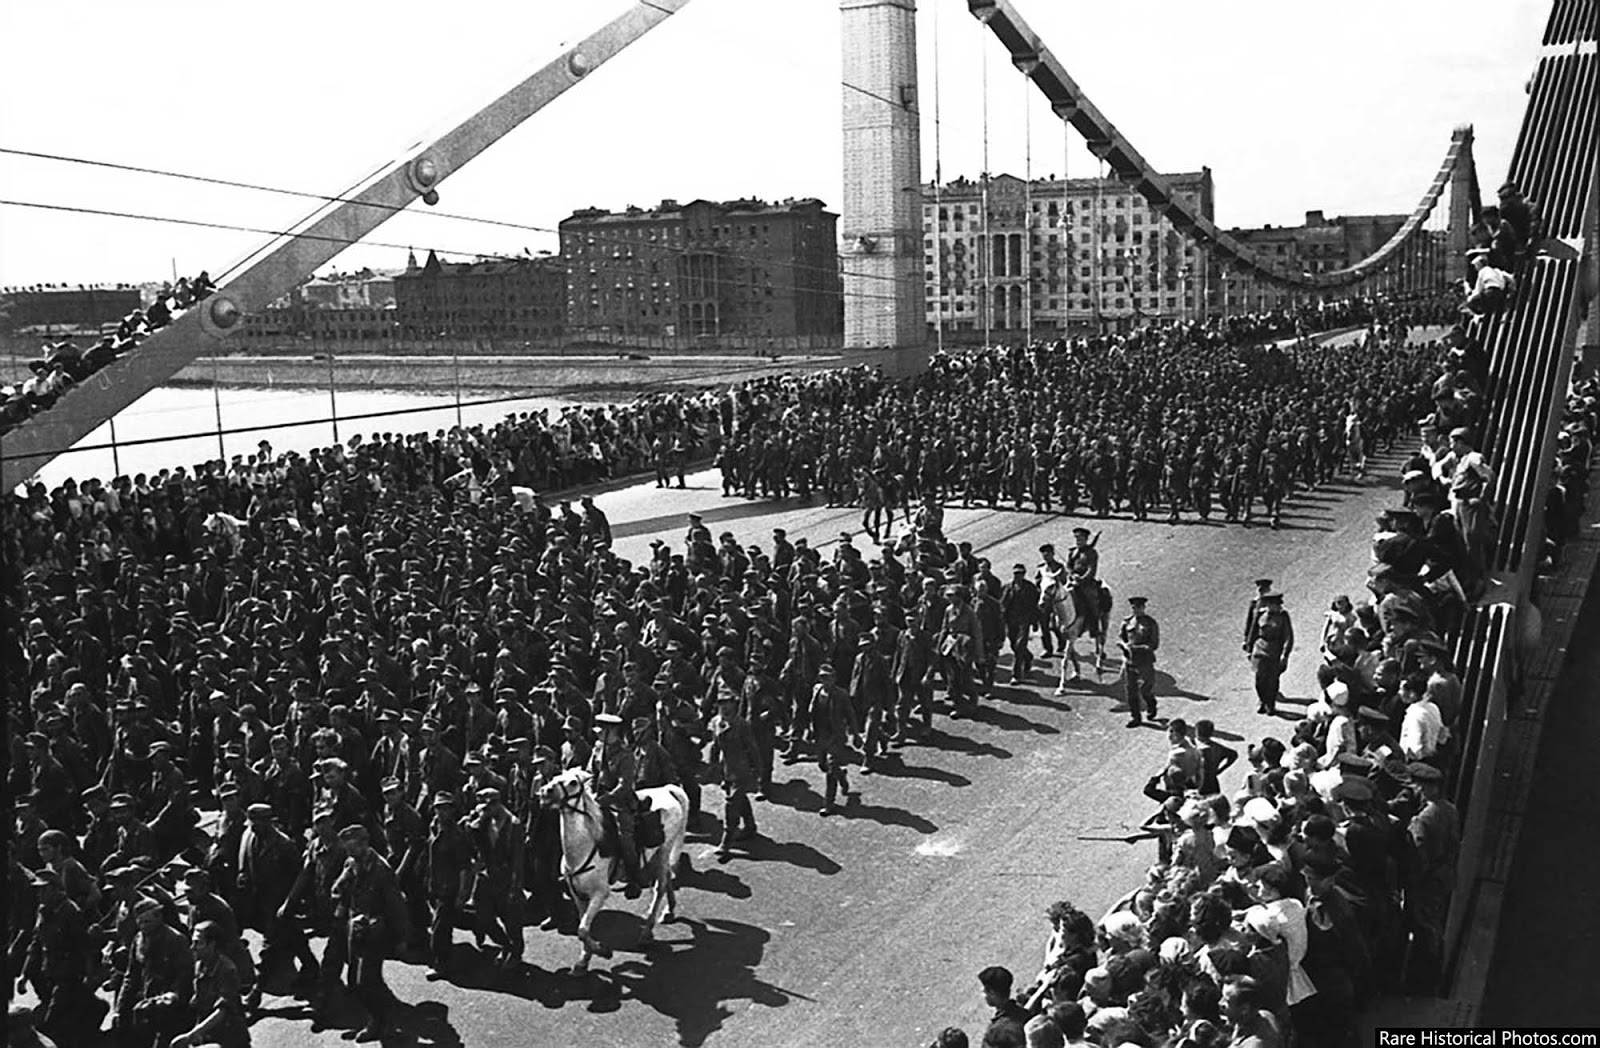 The Germans lost 350,000 men, 160,000 prisoners died on the way to prison camps, 57,000 prisoners were paraded in Moscow.